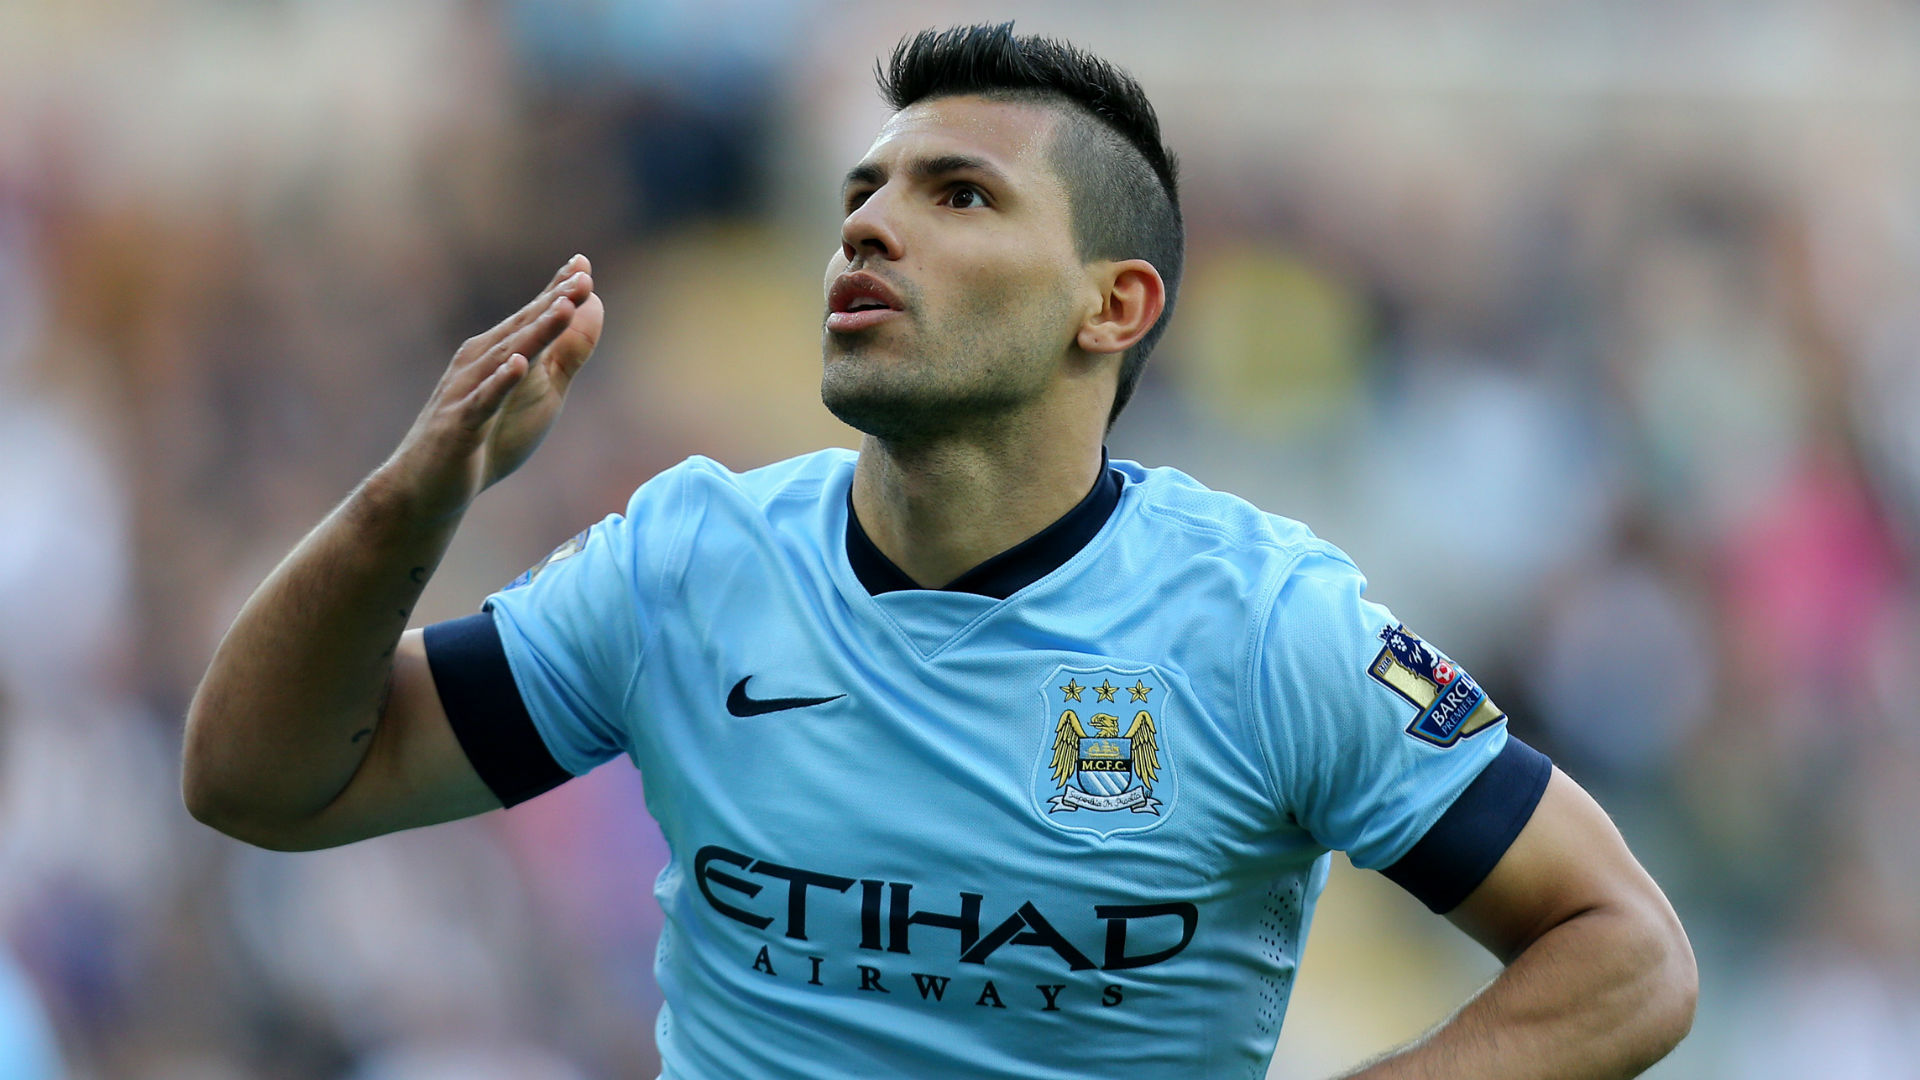 Agüero Wallpapers: Sergio Aguero #651615 Wallpapers High Quality